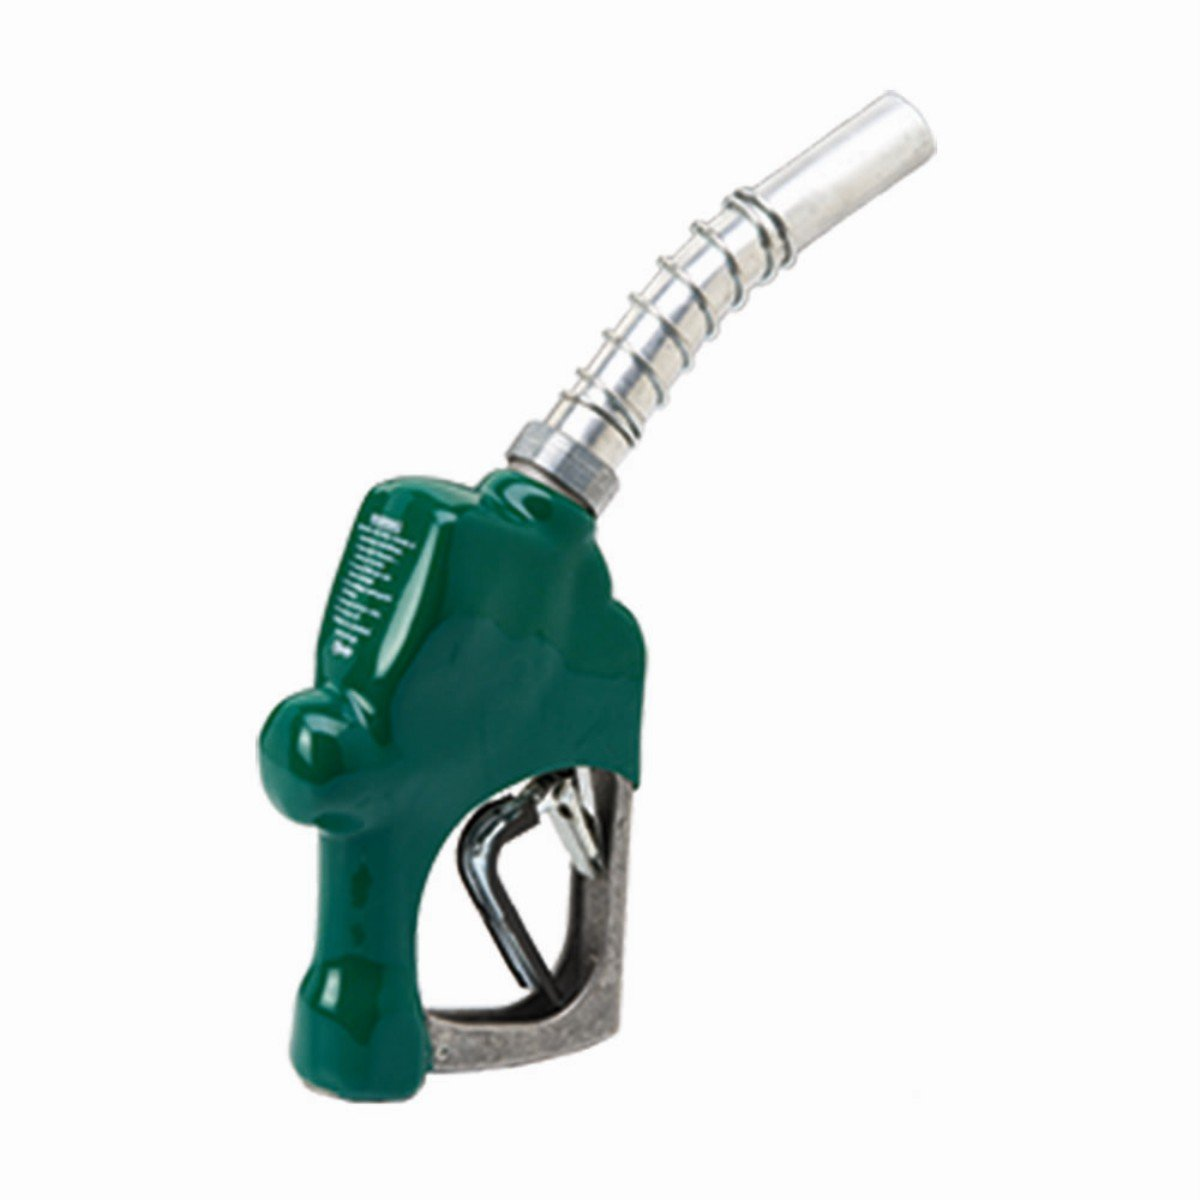 Husky 696310N-03 New 1HS Heavy Duty Diesel Nozzle with 3-Notch Hold Open Clip and Metal Hand Guard